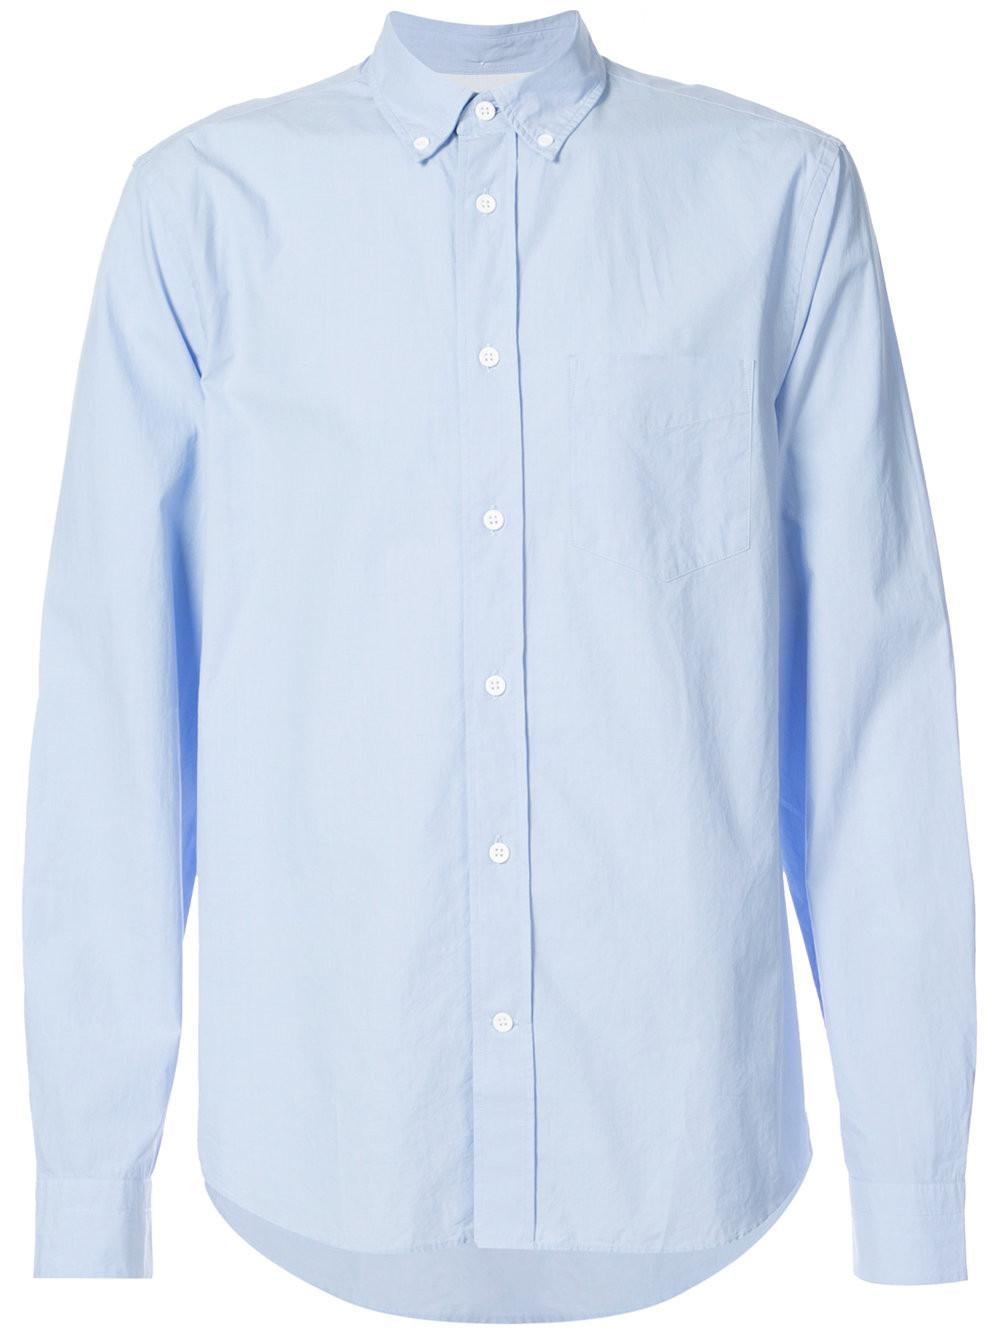 8be4463f62 Acne Studios Isherwood Shirt in Blue for Men - Lyst